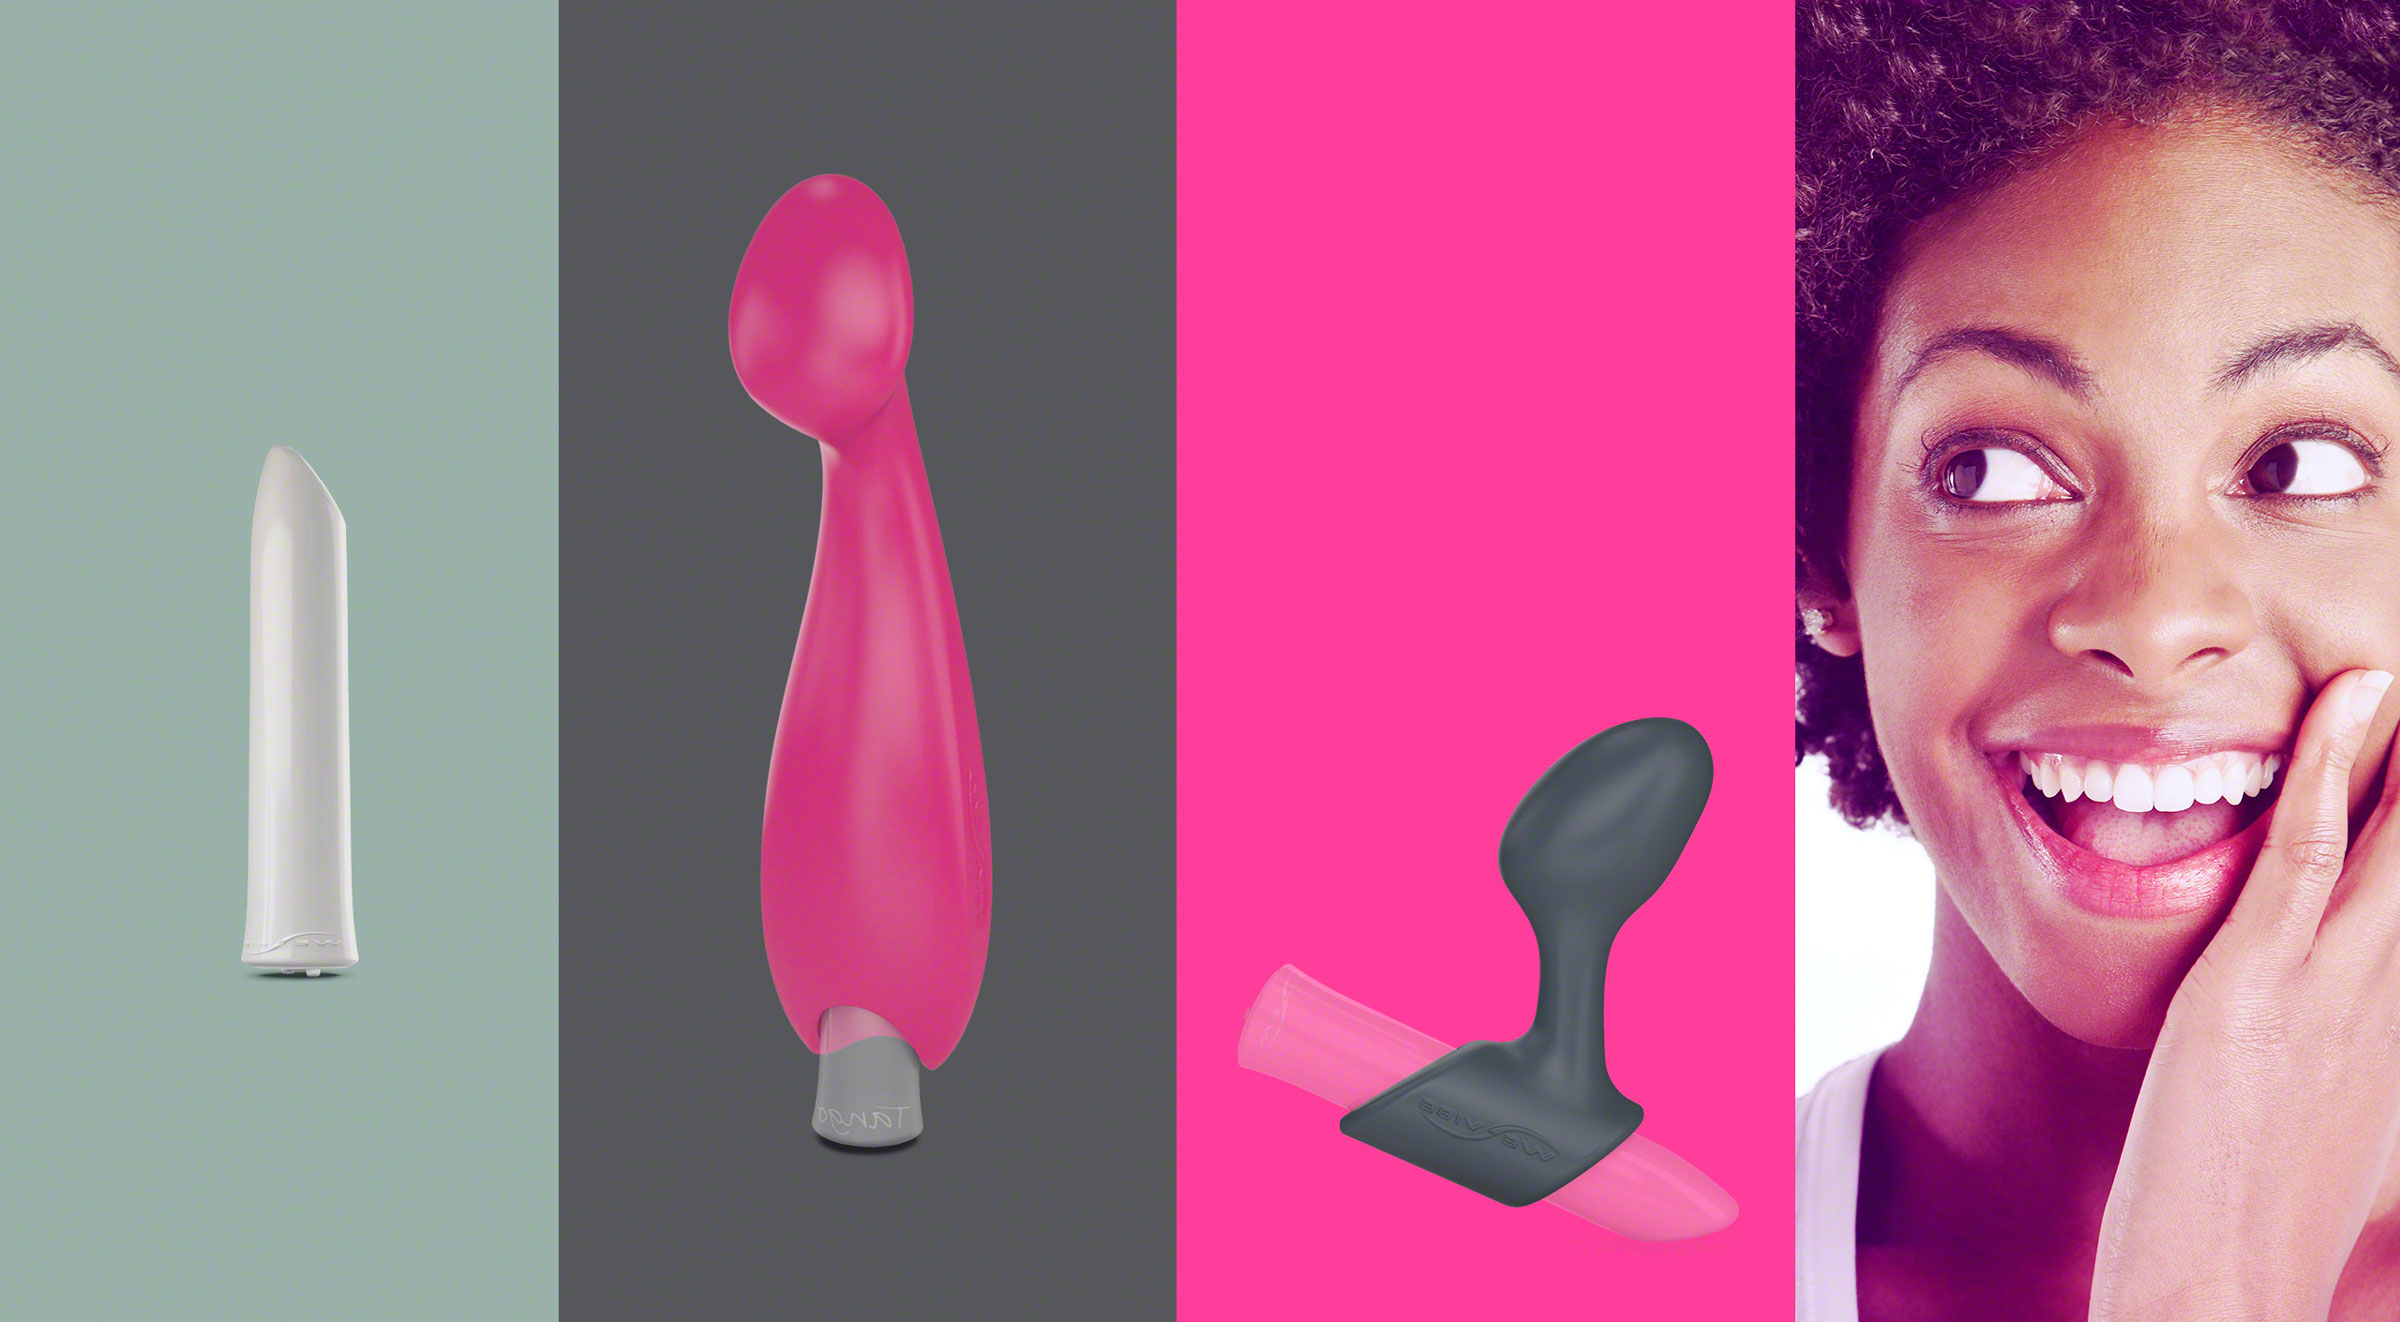 We-Vibe Accessories - explore, play, and discover